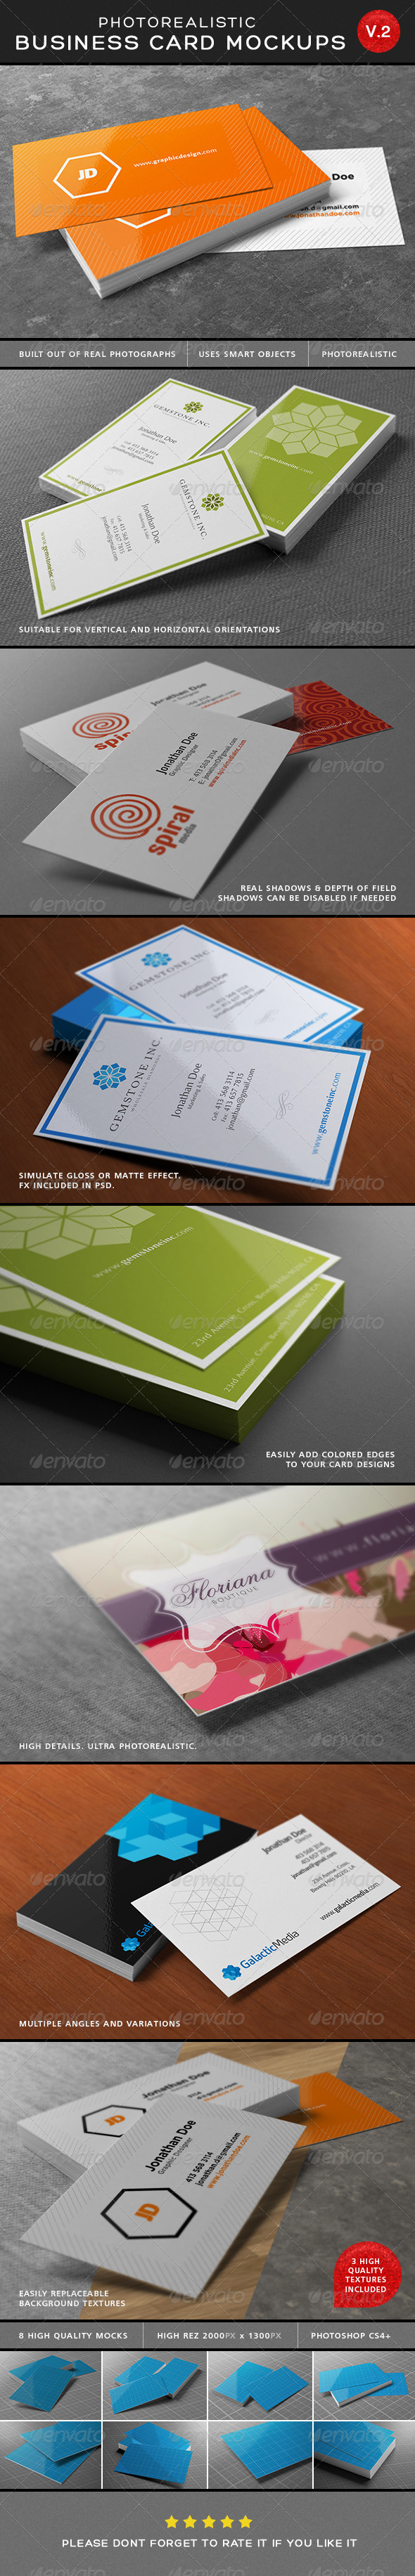 GraphicRiver Ultimate Photorealistic Business Card Mockups V2 6545912